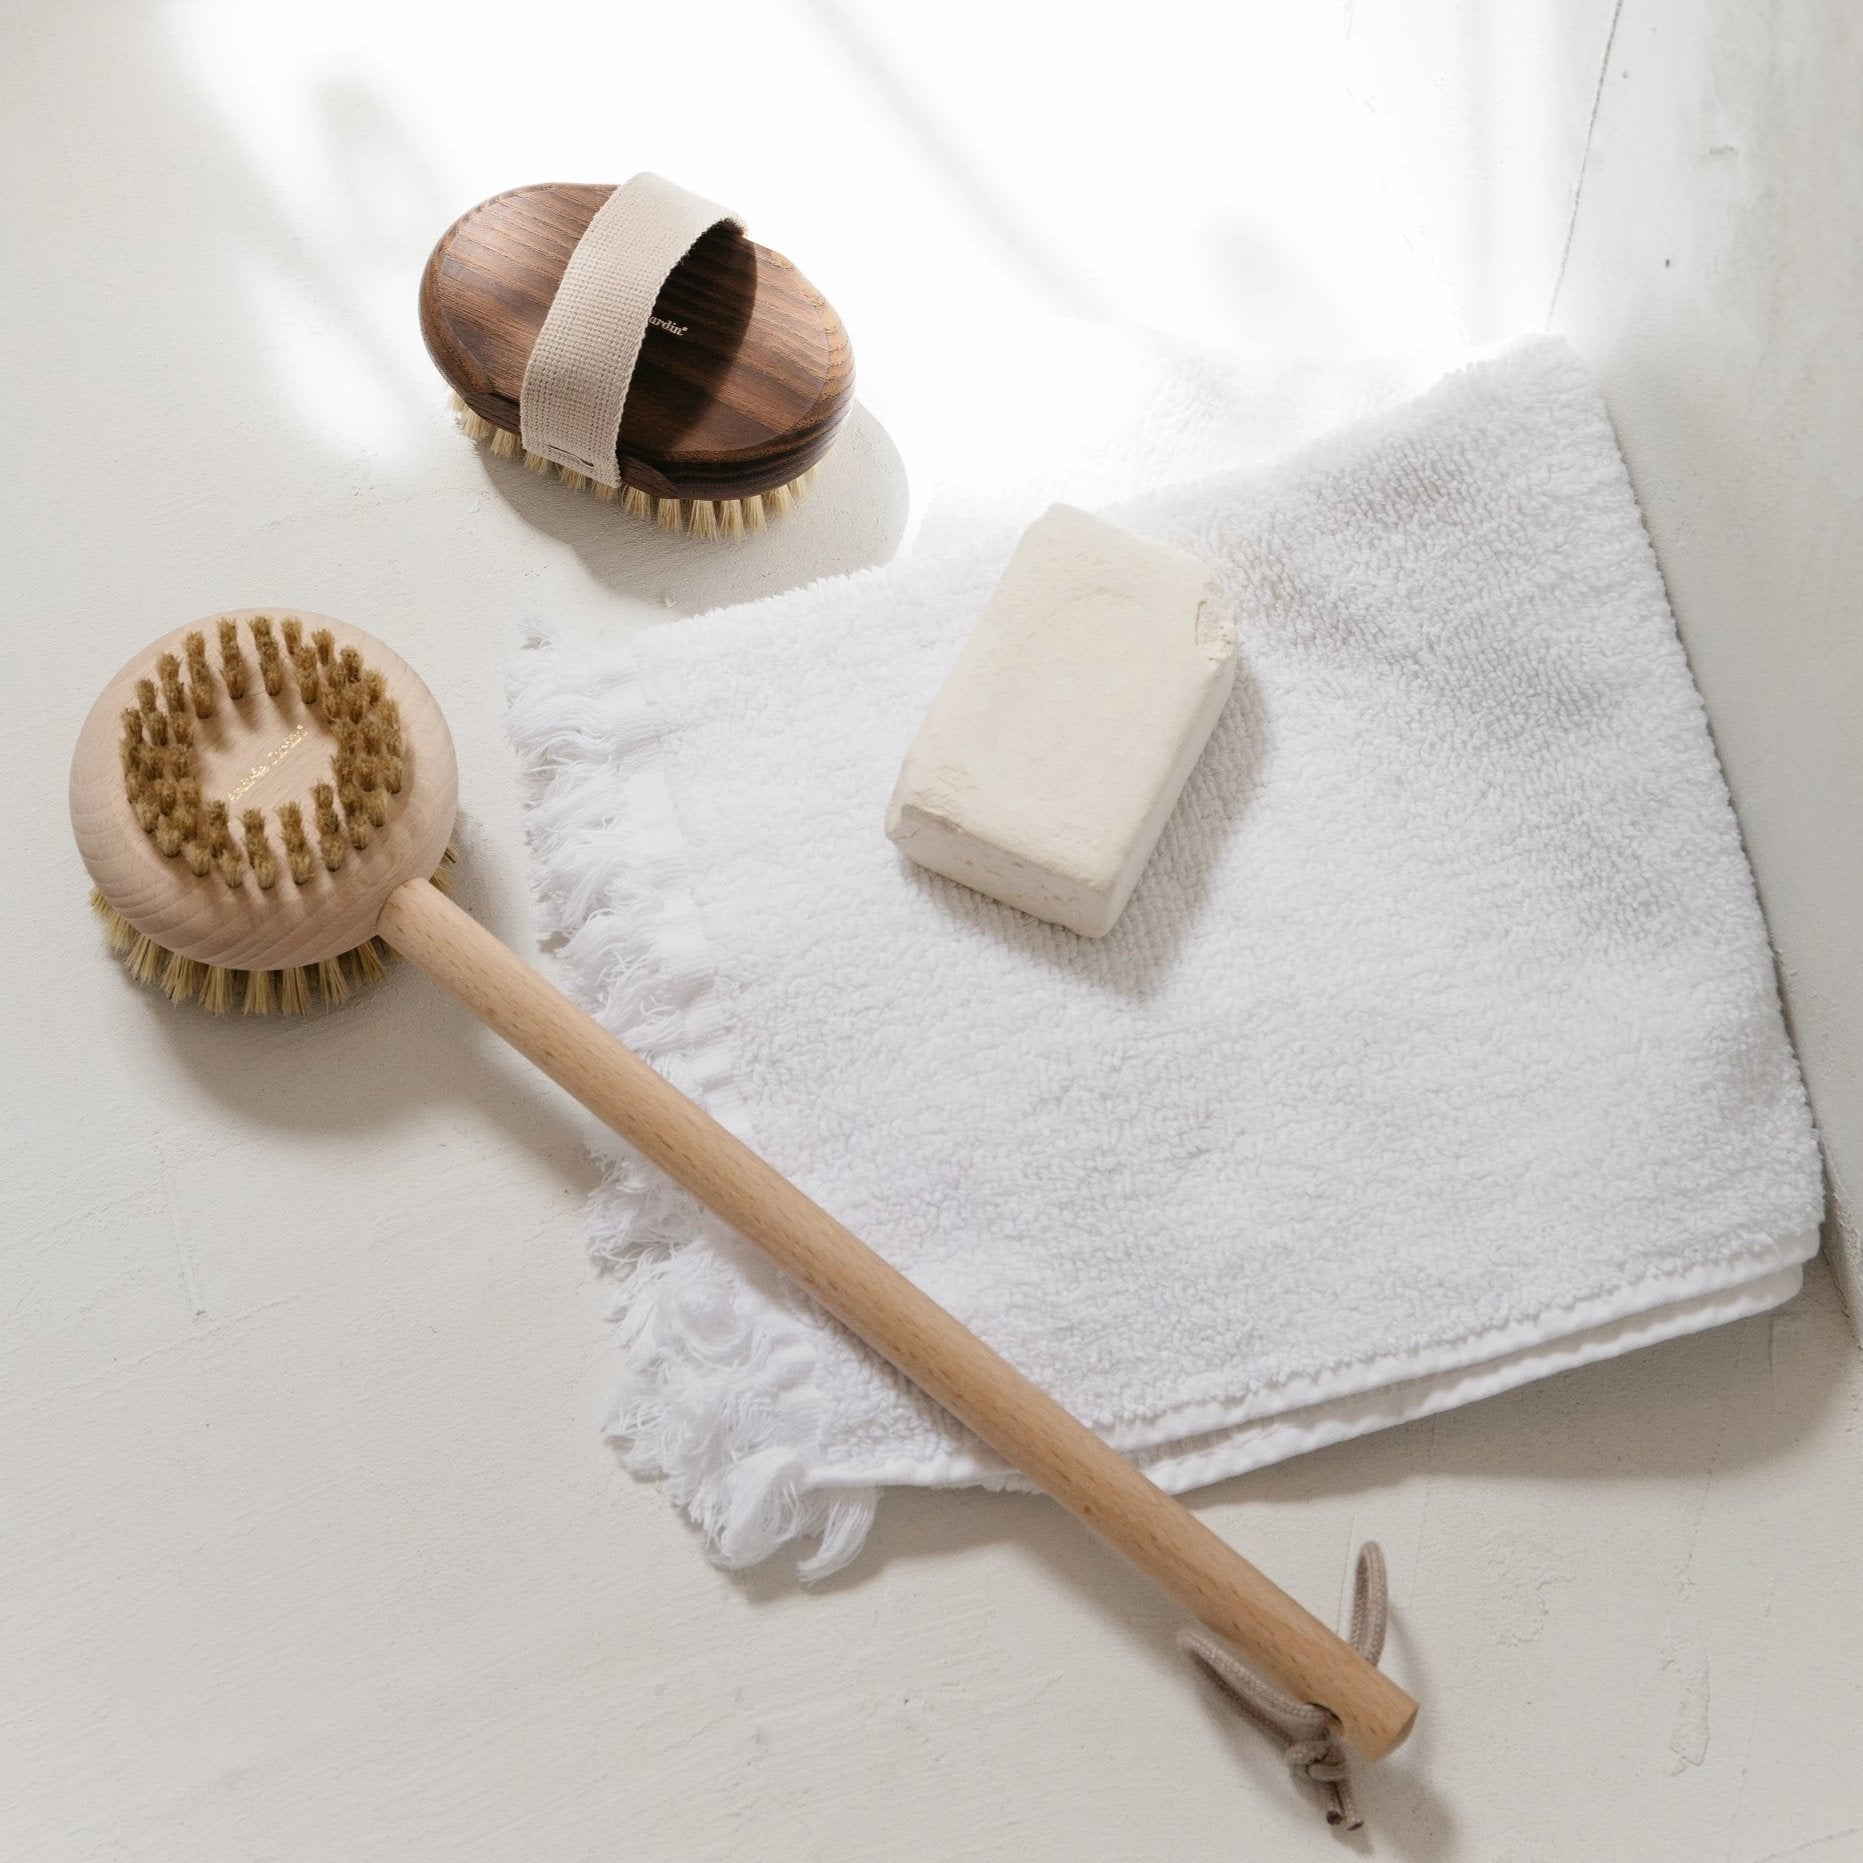 Tradition Bath Brush- Beech wood